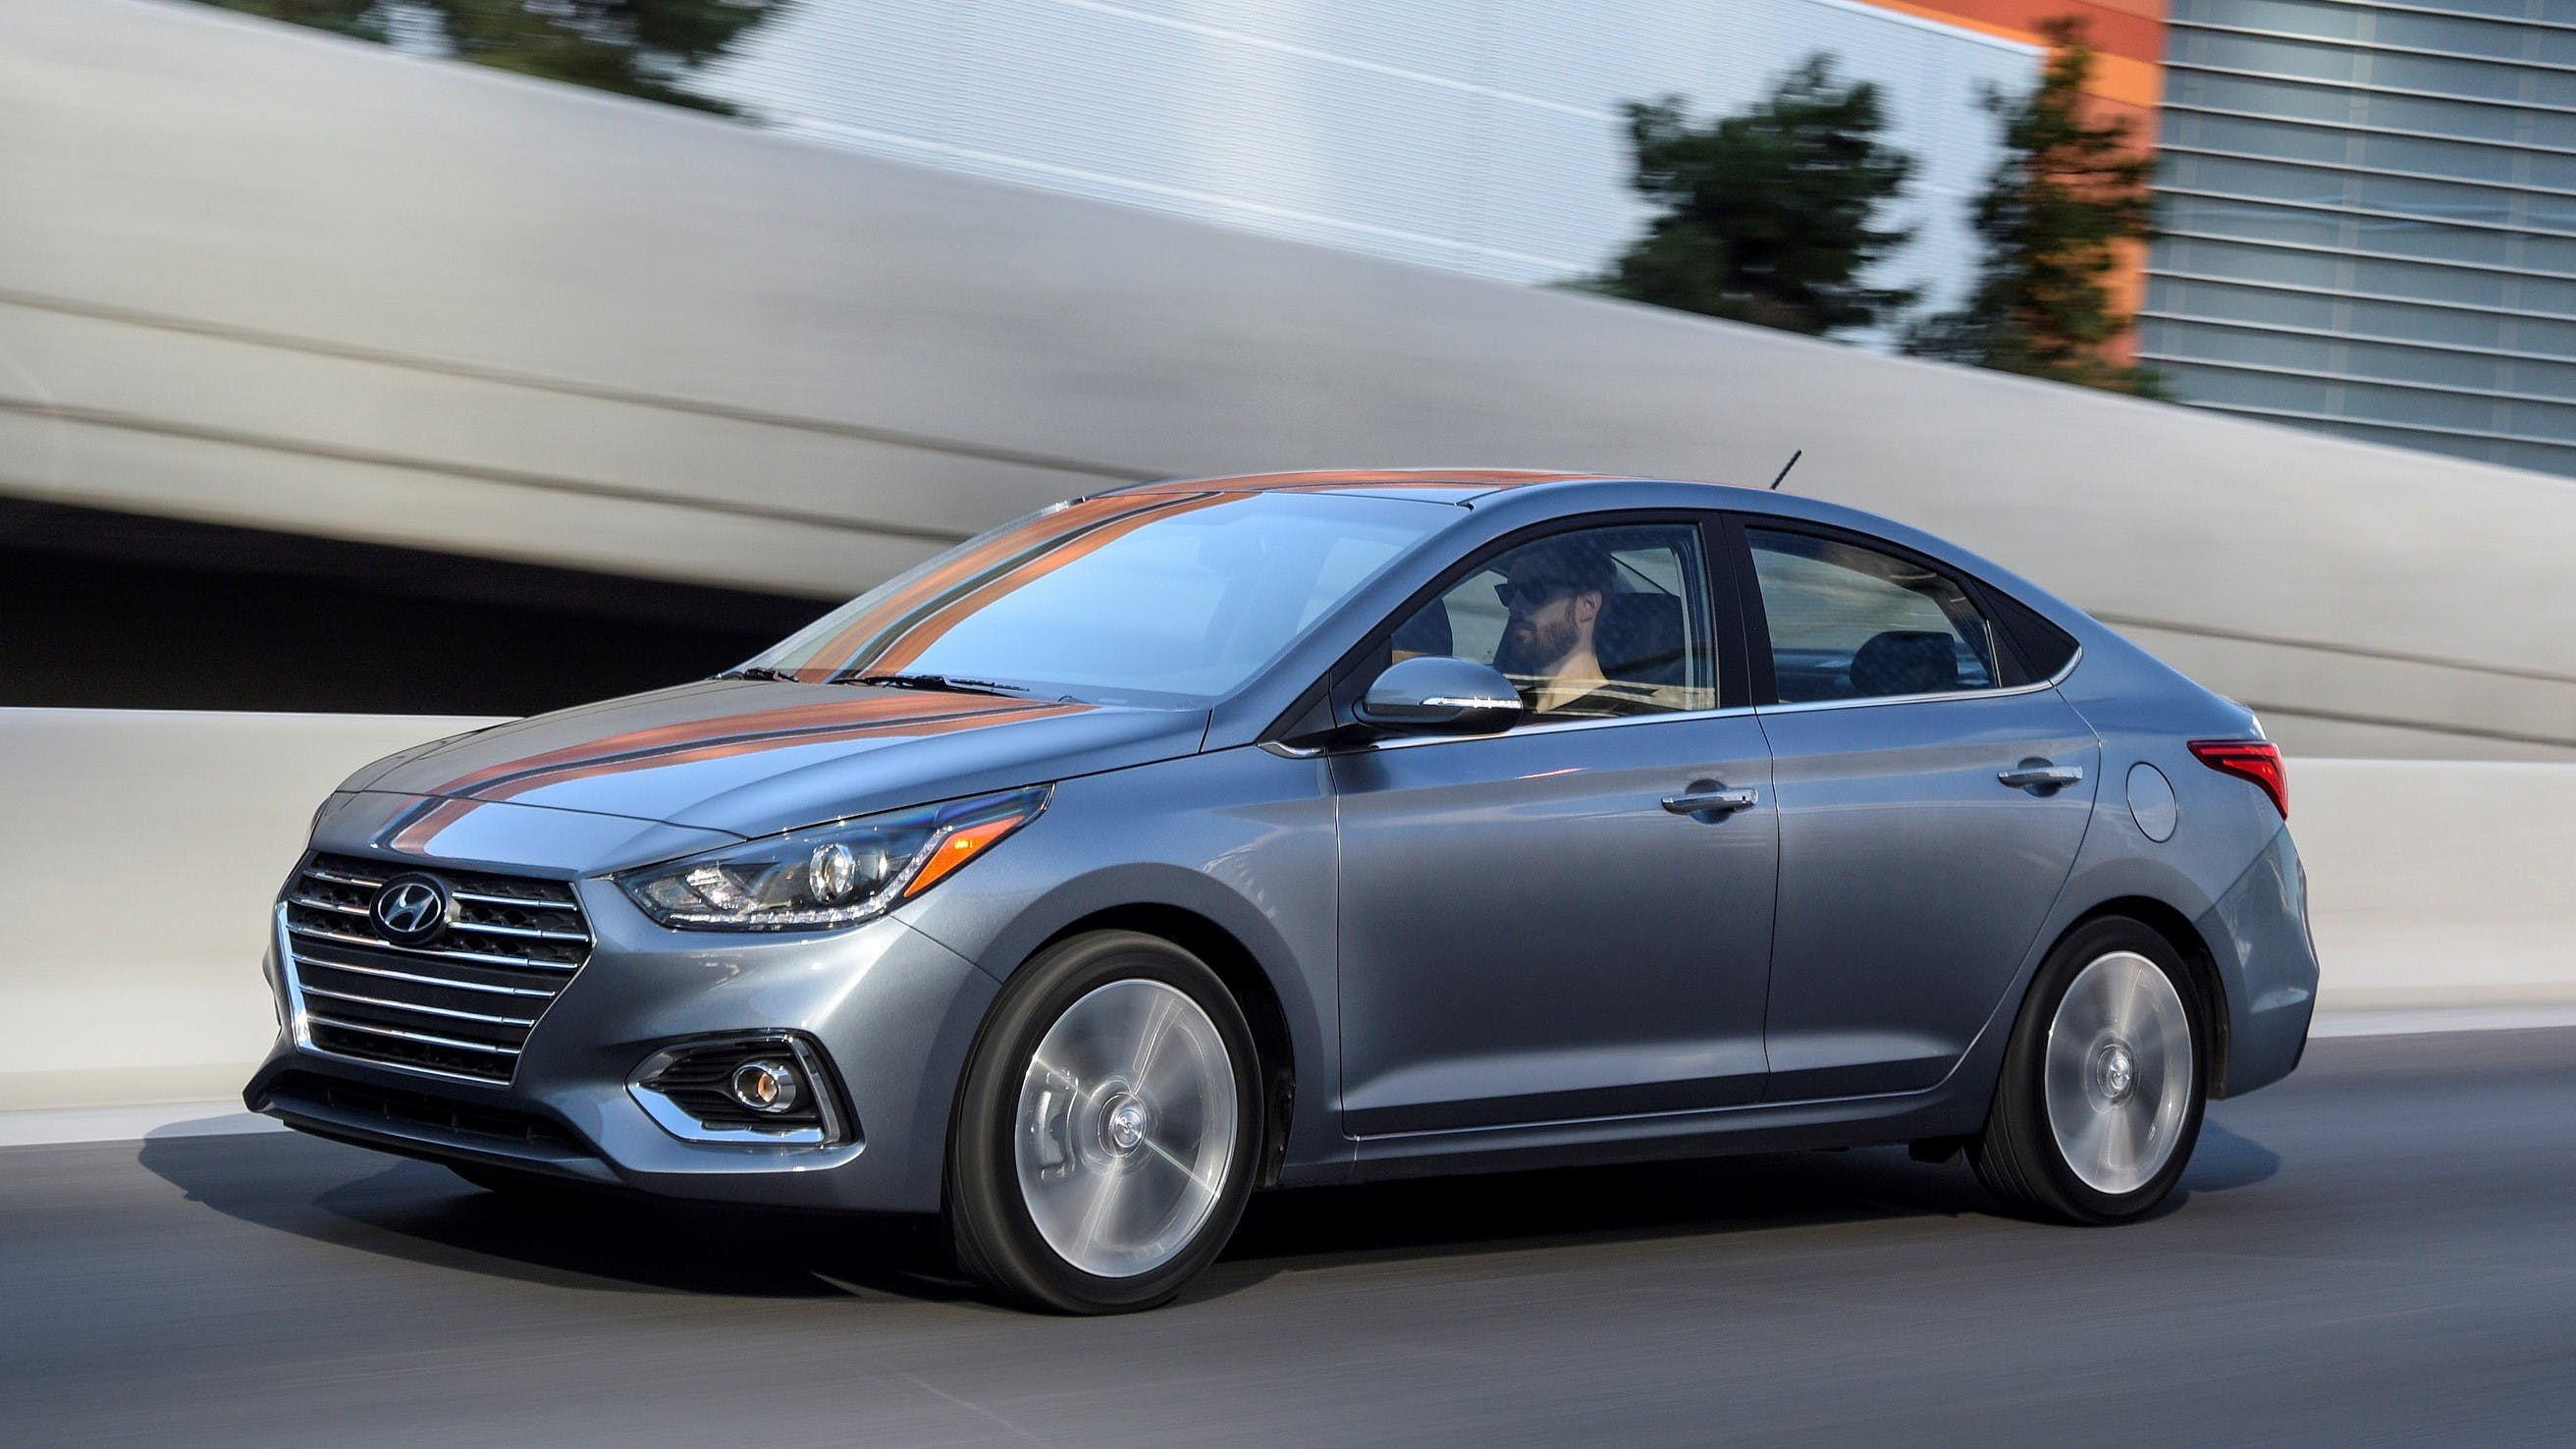 10 Cheapest Cars With Good Gas Mileage In 2020 Carfax